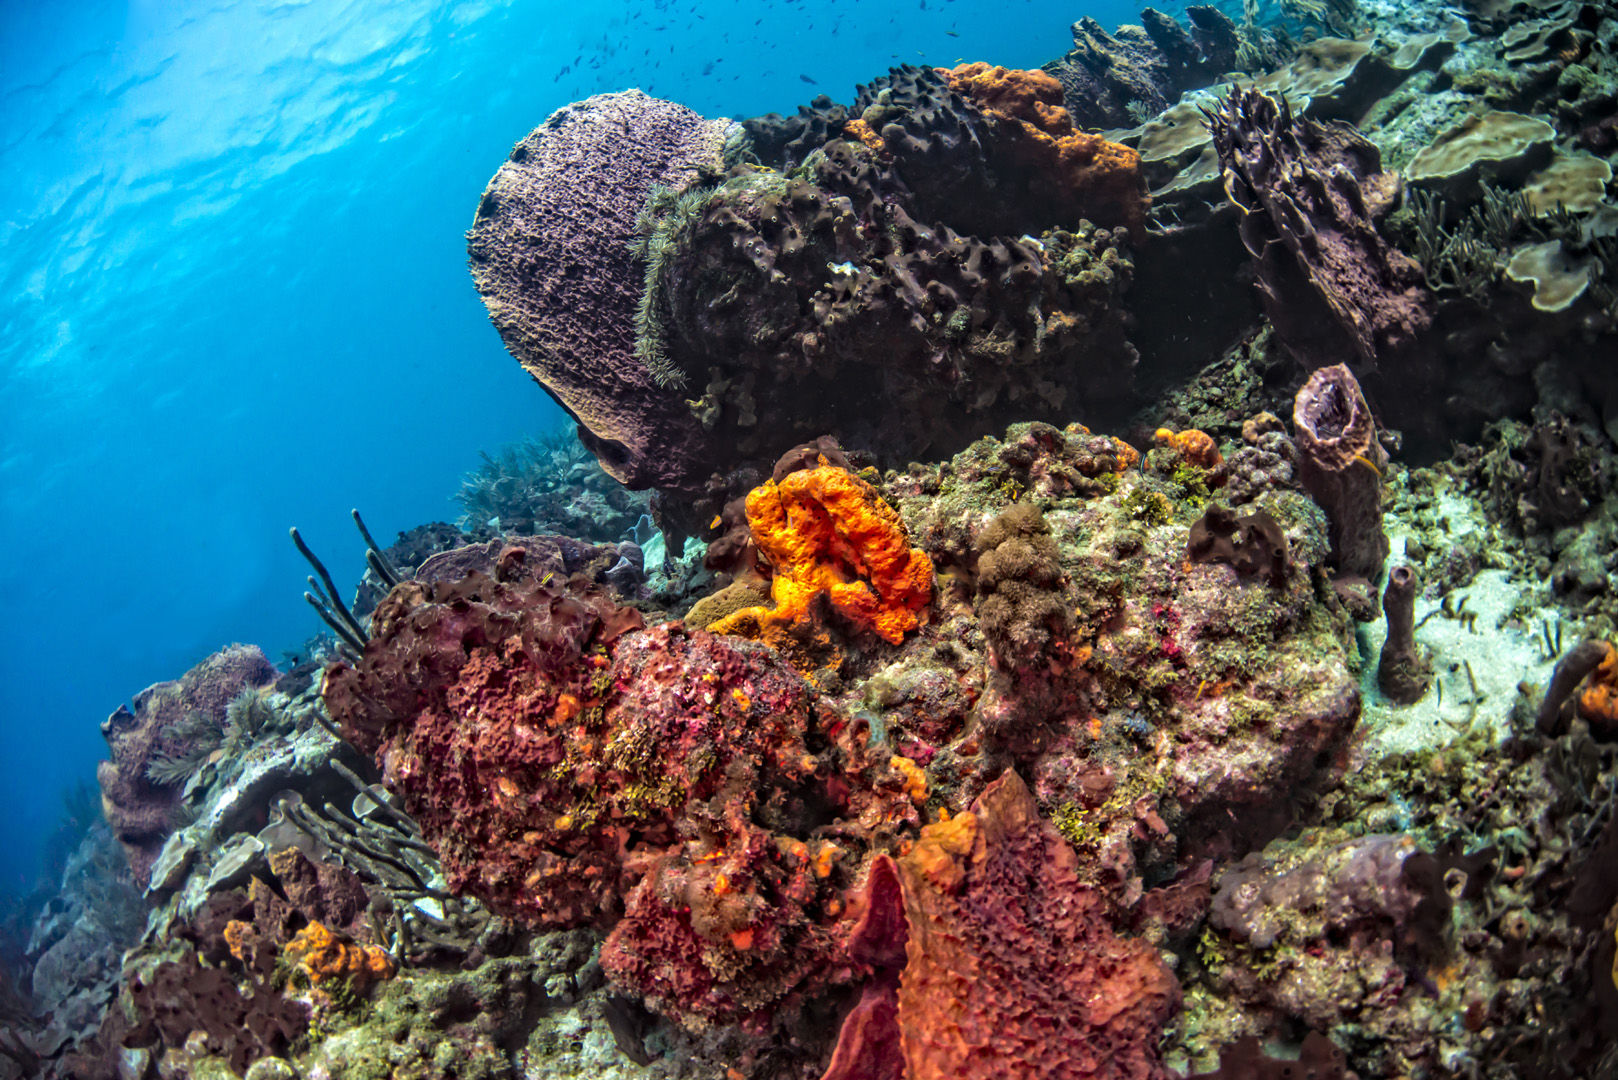 The waters of Tobago offer magnificent coral reefs to explore